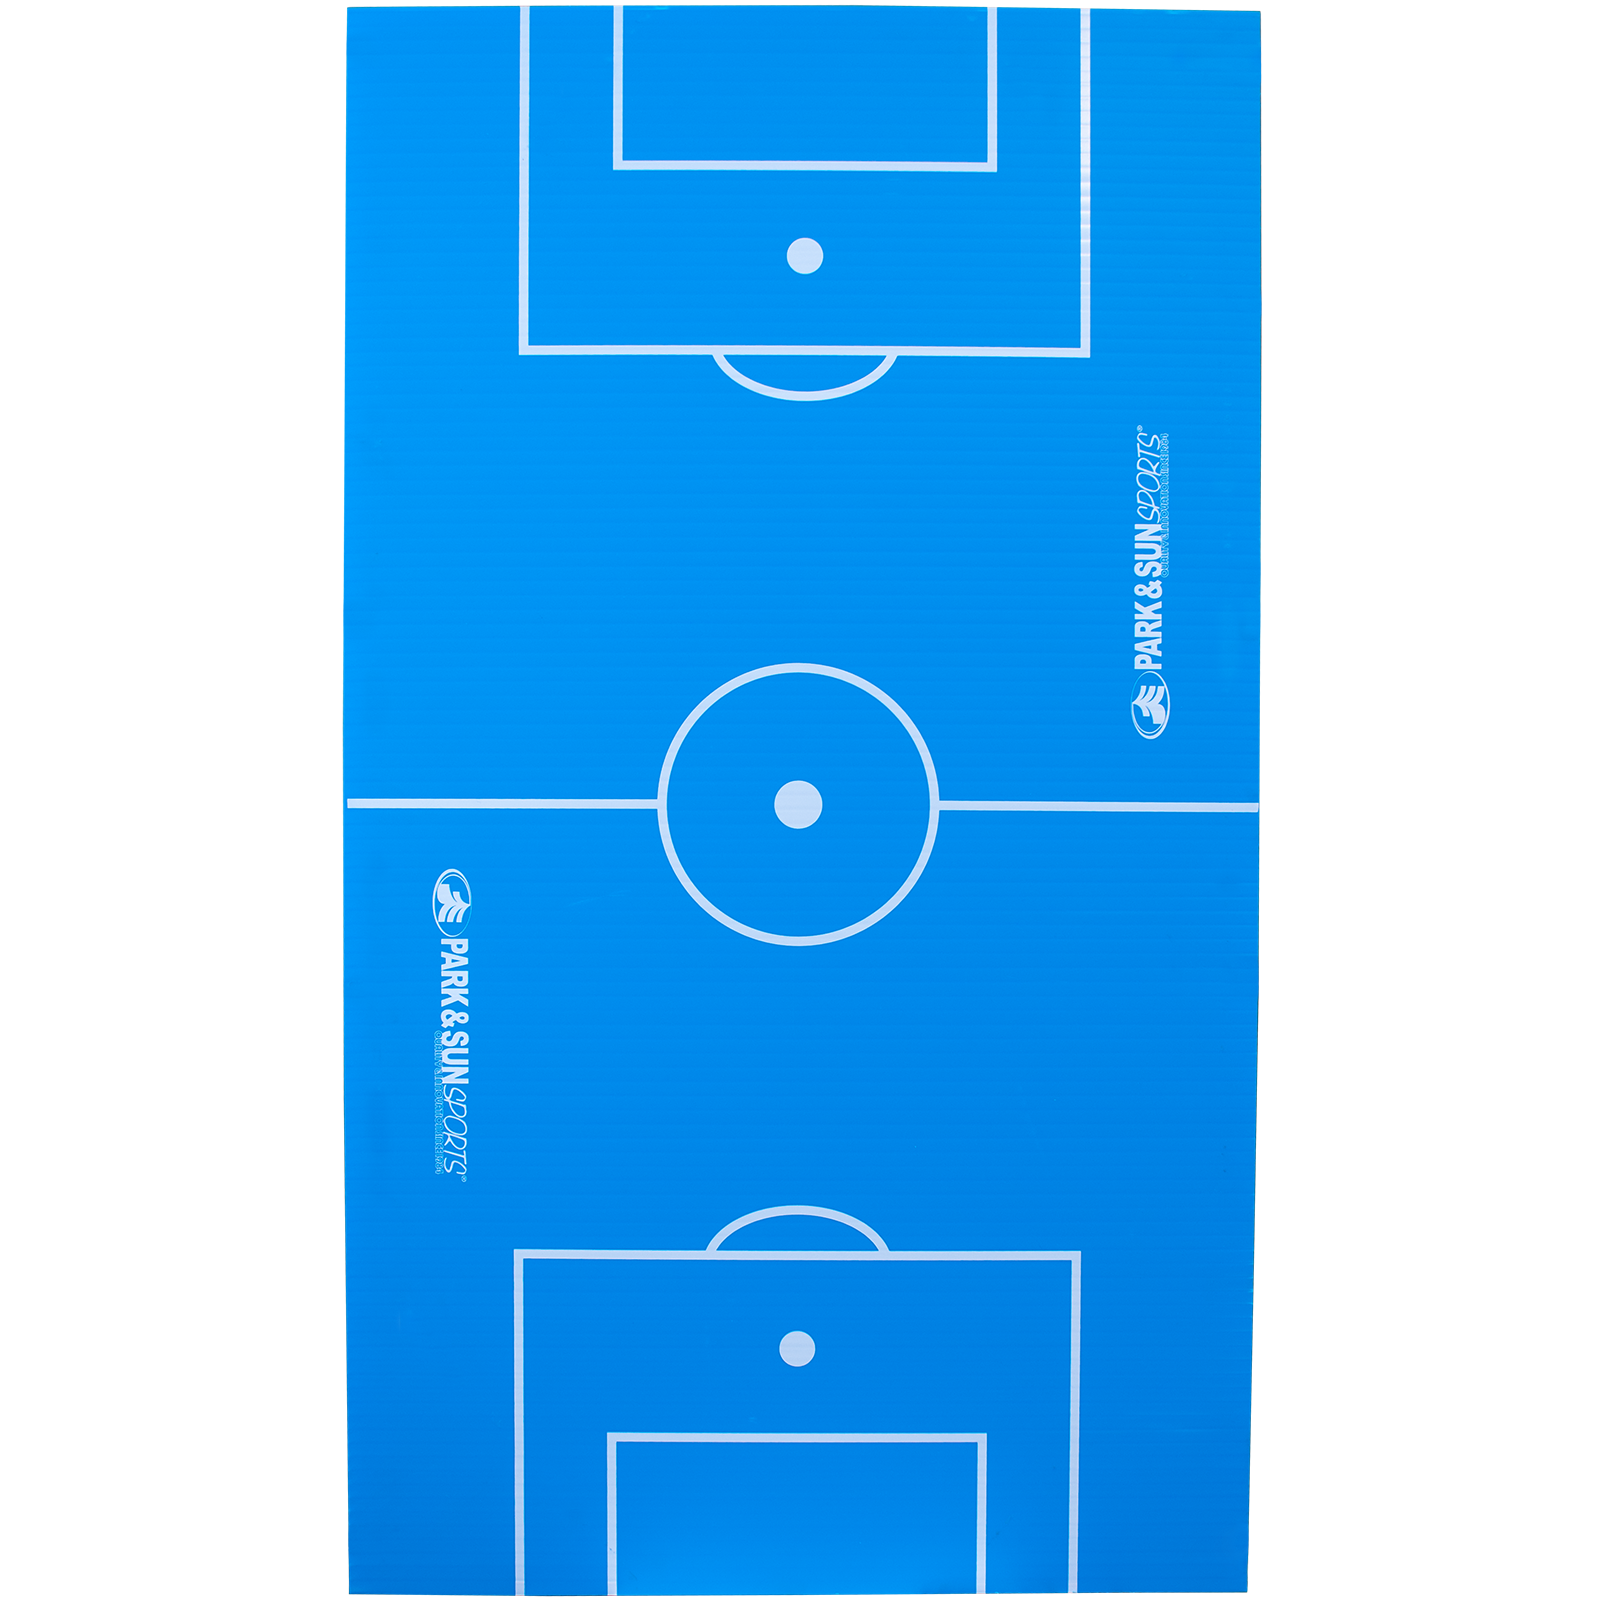 Park and Sports Blue Sky Soccer Table Surface